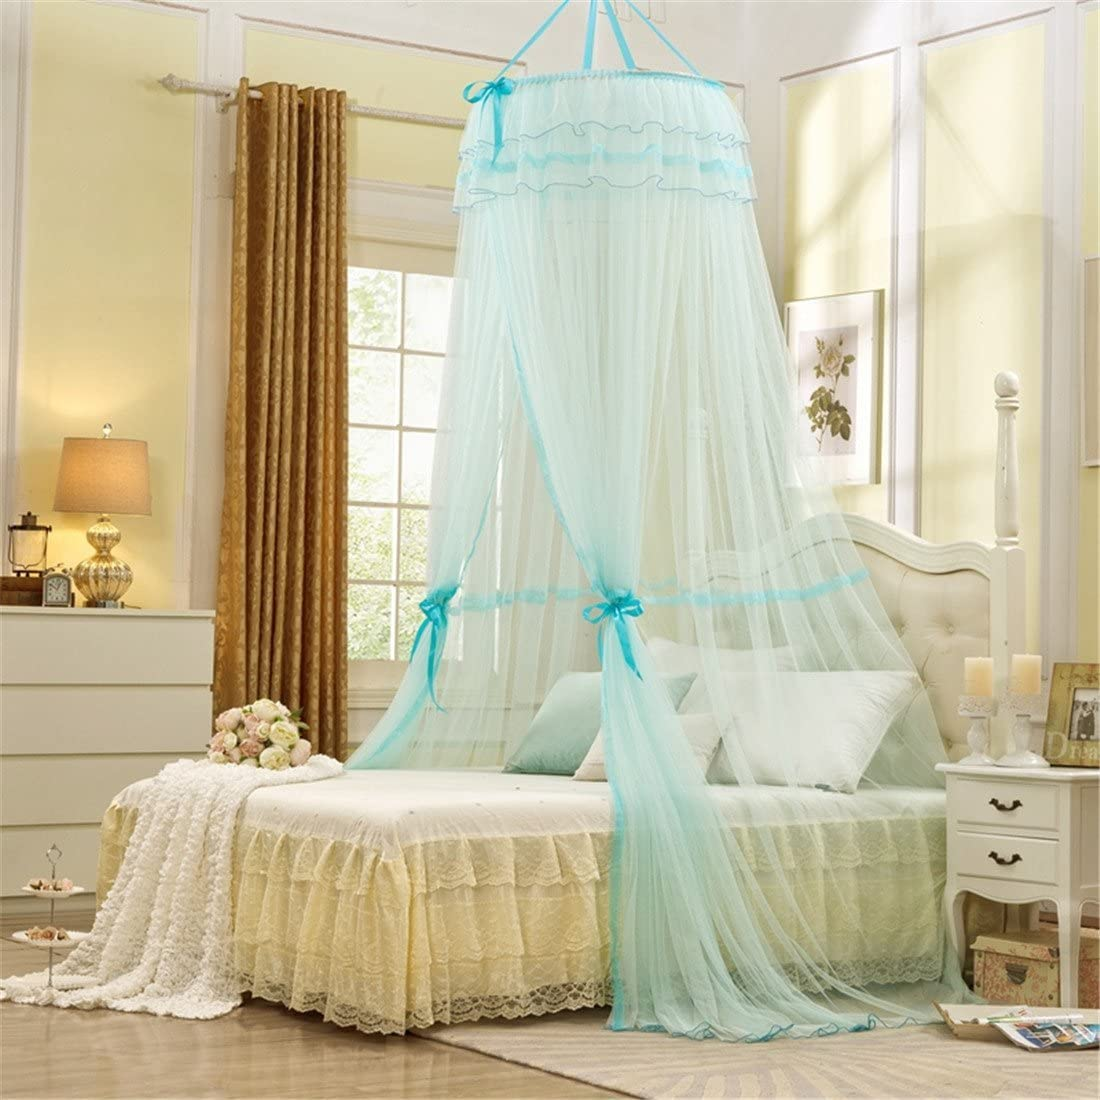 Round Hoop Princess Girl Pastoral Lace Bed Canopy Mosquito Net Fit Crib Twin Full Queen Bed  sc 1 st  Amazon.com & Shop Amazon.com | Bed Canopies u0026 Drapes